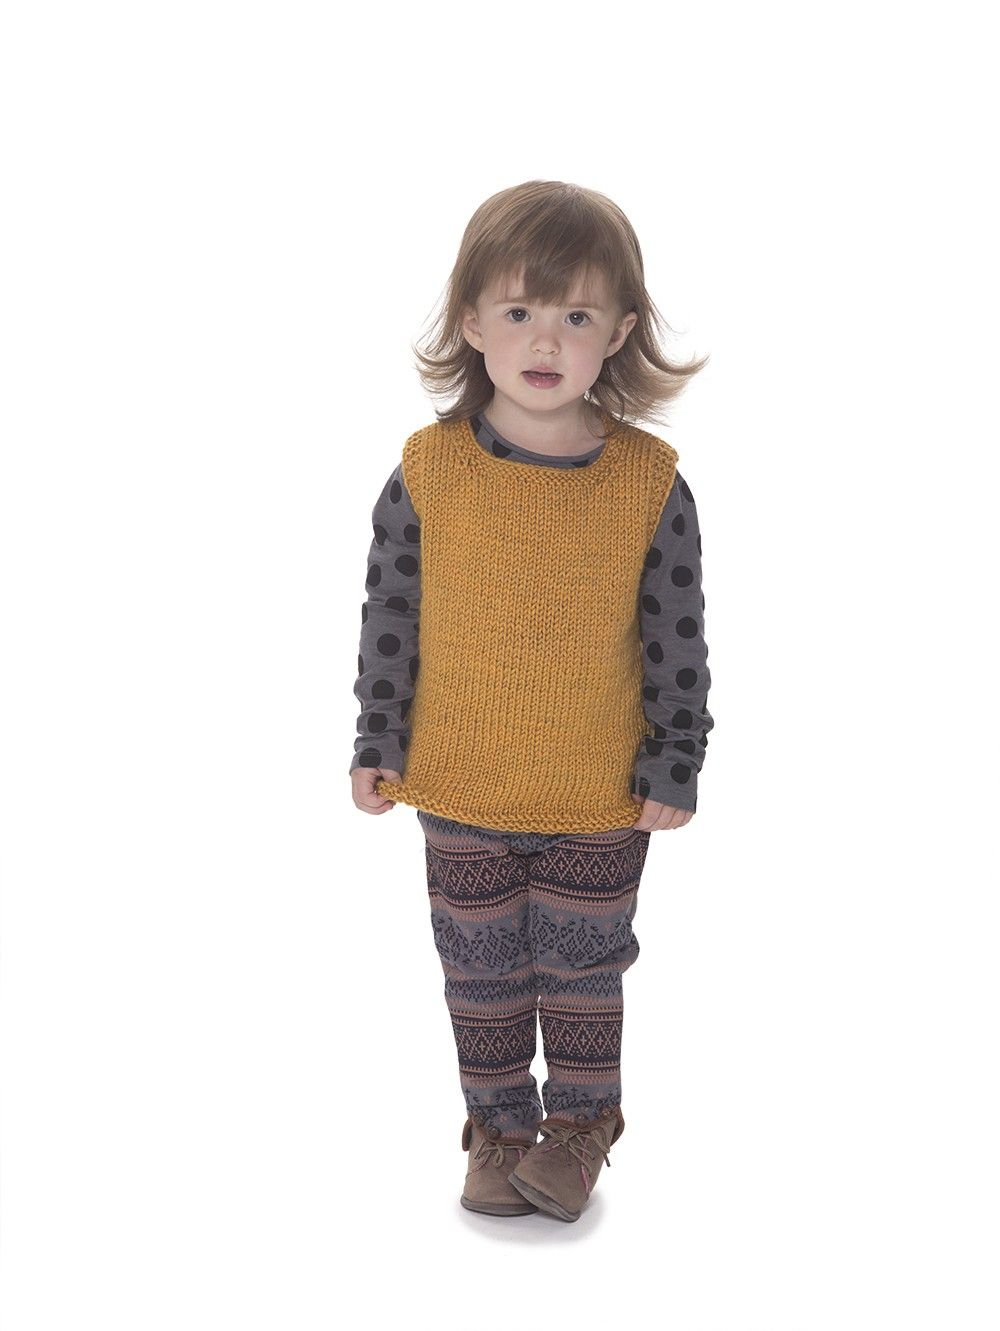 Next Generation Crewneck Vest (Knit) | Cherie Stamper | Pinterest ...